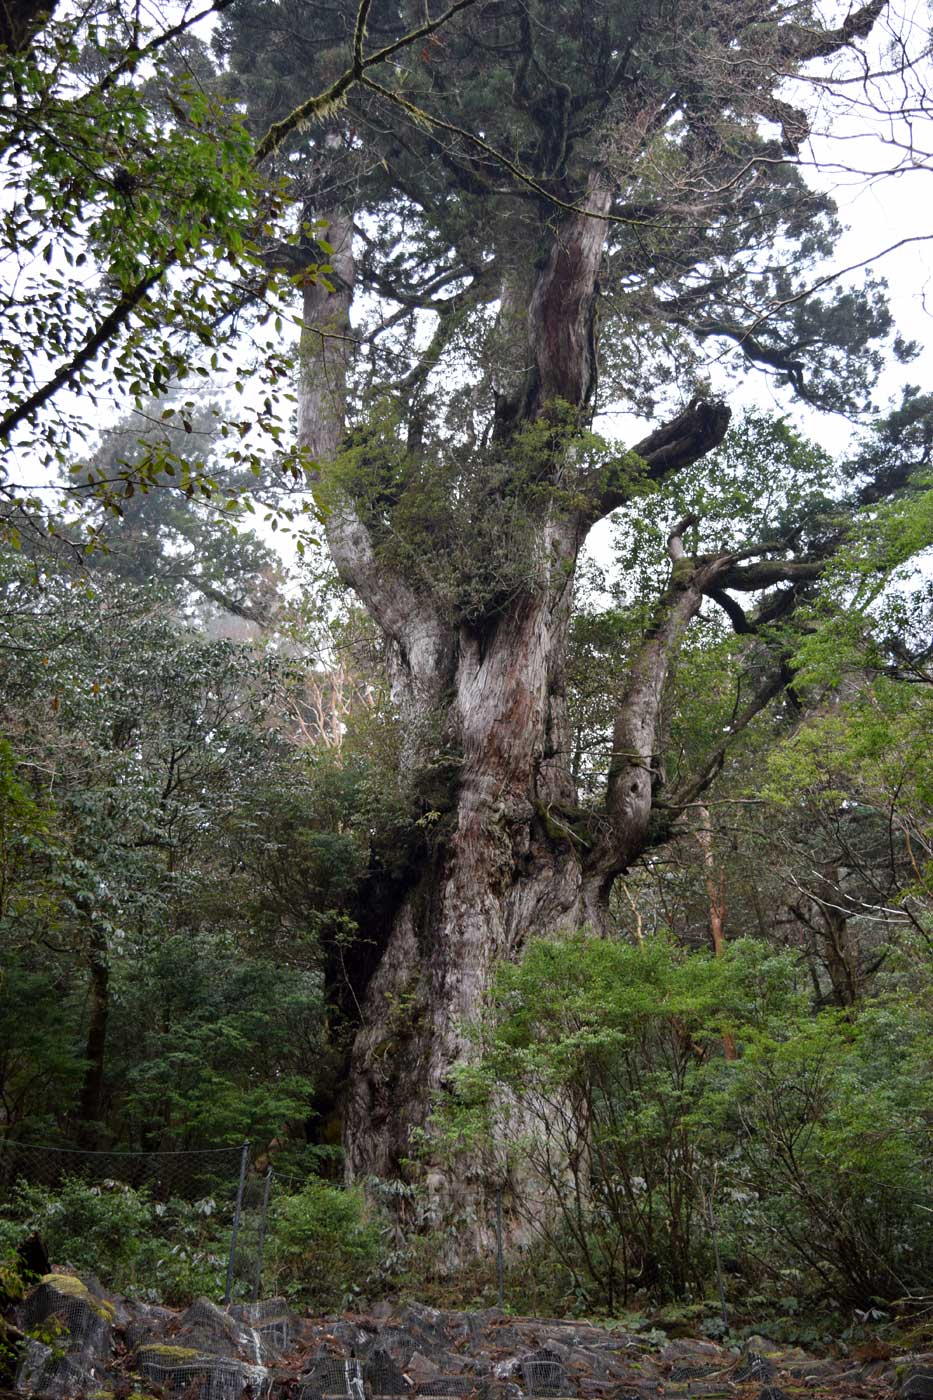 The <i>Jōmon sugi</i> is the largest conifer in Japan (height 25.3 m; diameter 5.22 m; trunk circumf. 16.4 m).